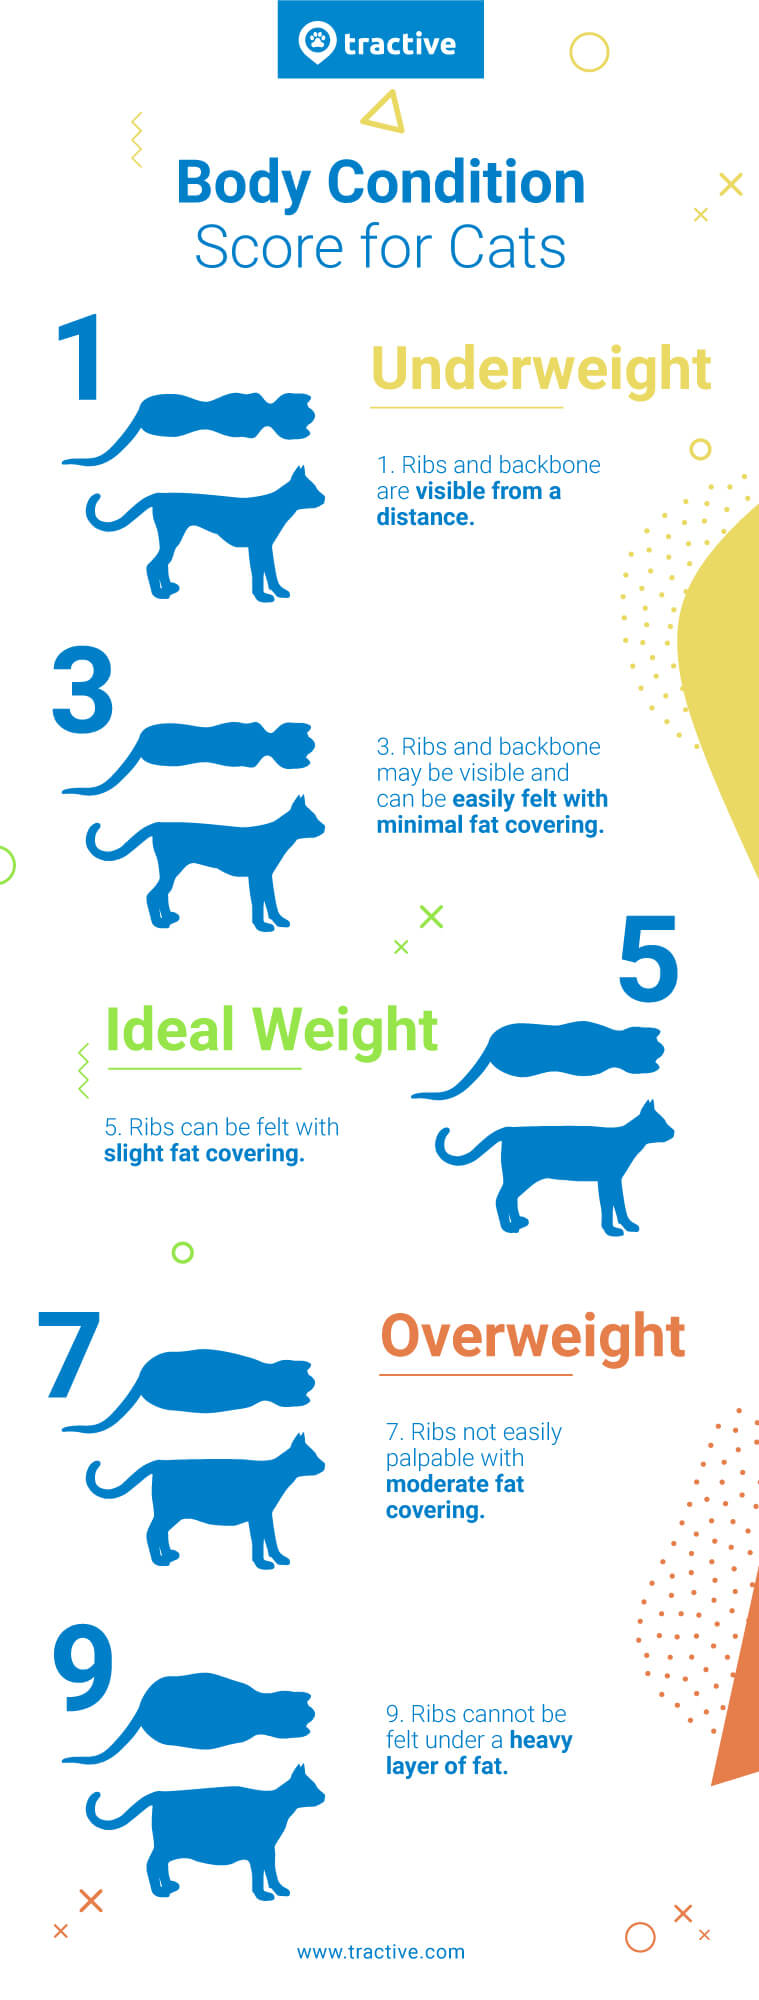 Ideal Cat Weight Chart : ideal, weight, chart, Healthy, Weight, Chart, Picture, Anyimage.Org